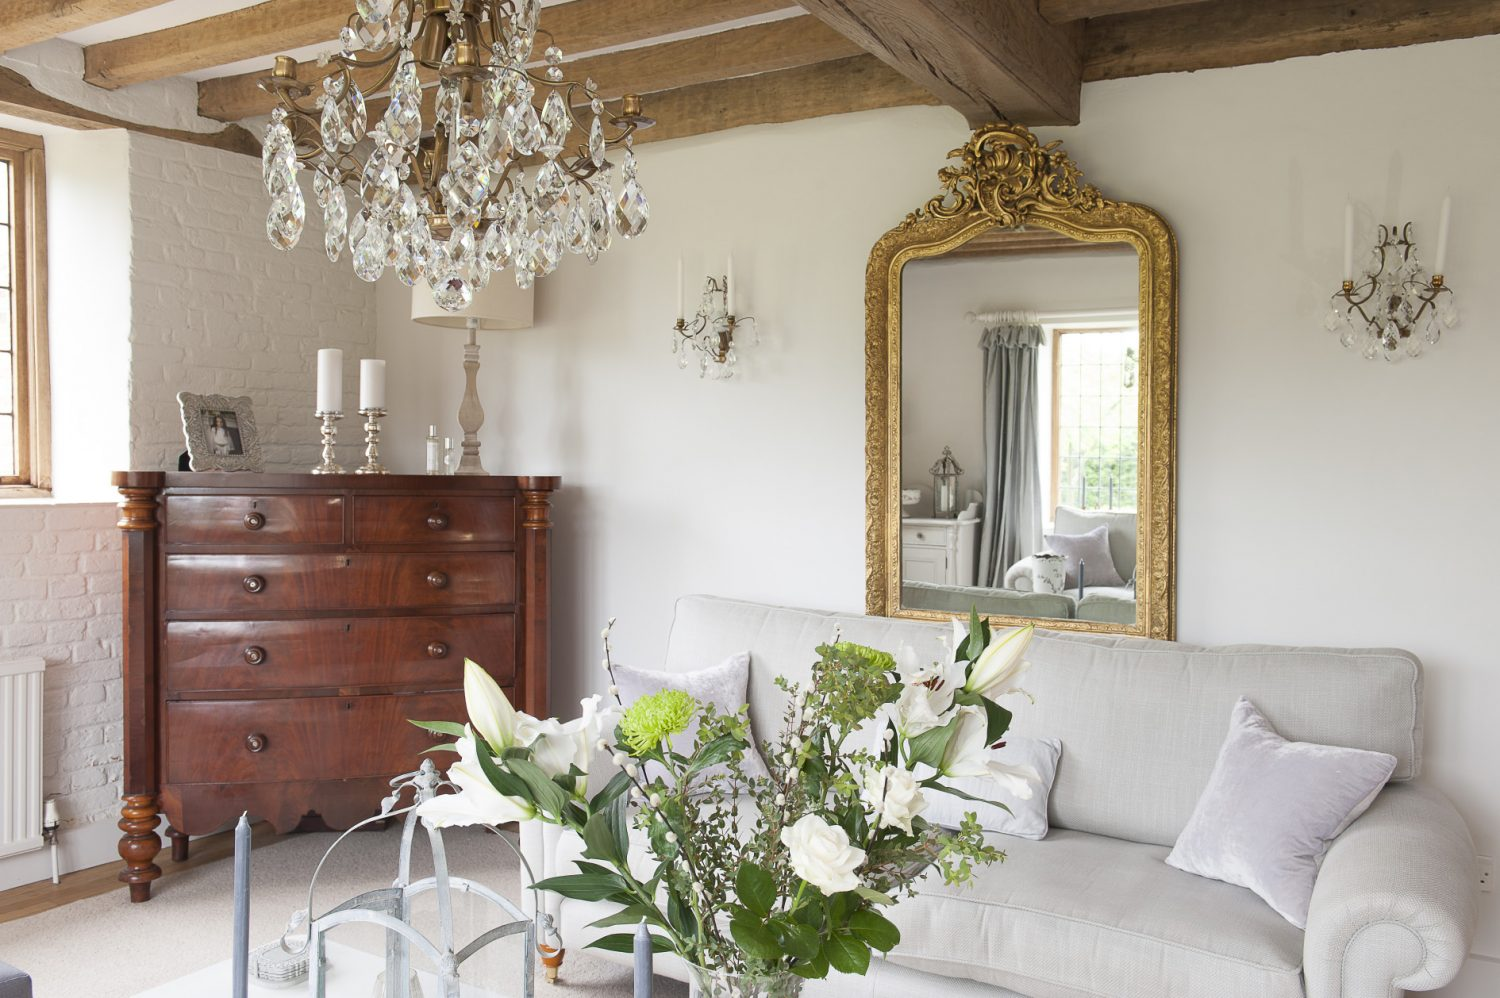 Tara and Mark used to run a business importing Swedish chandeliers